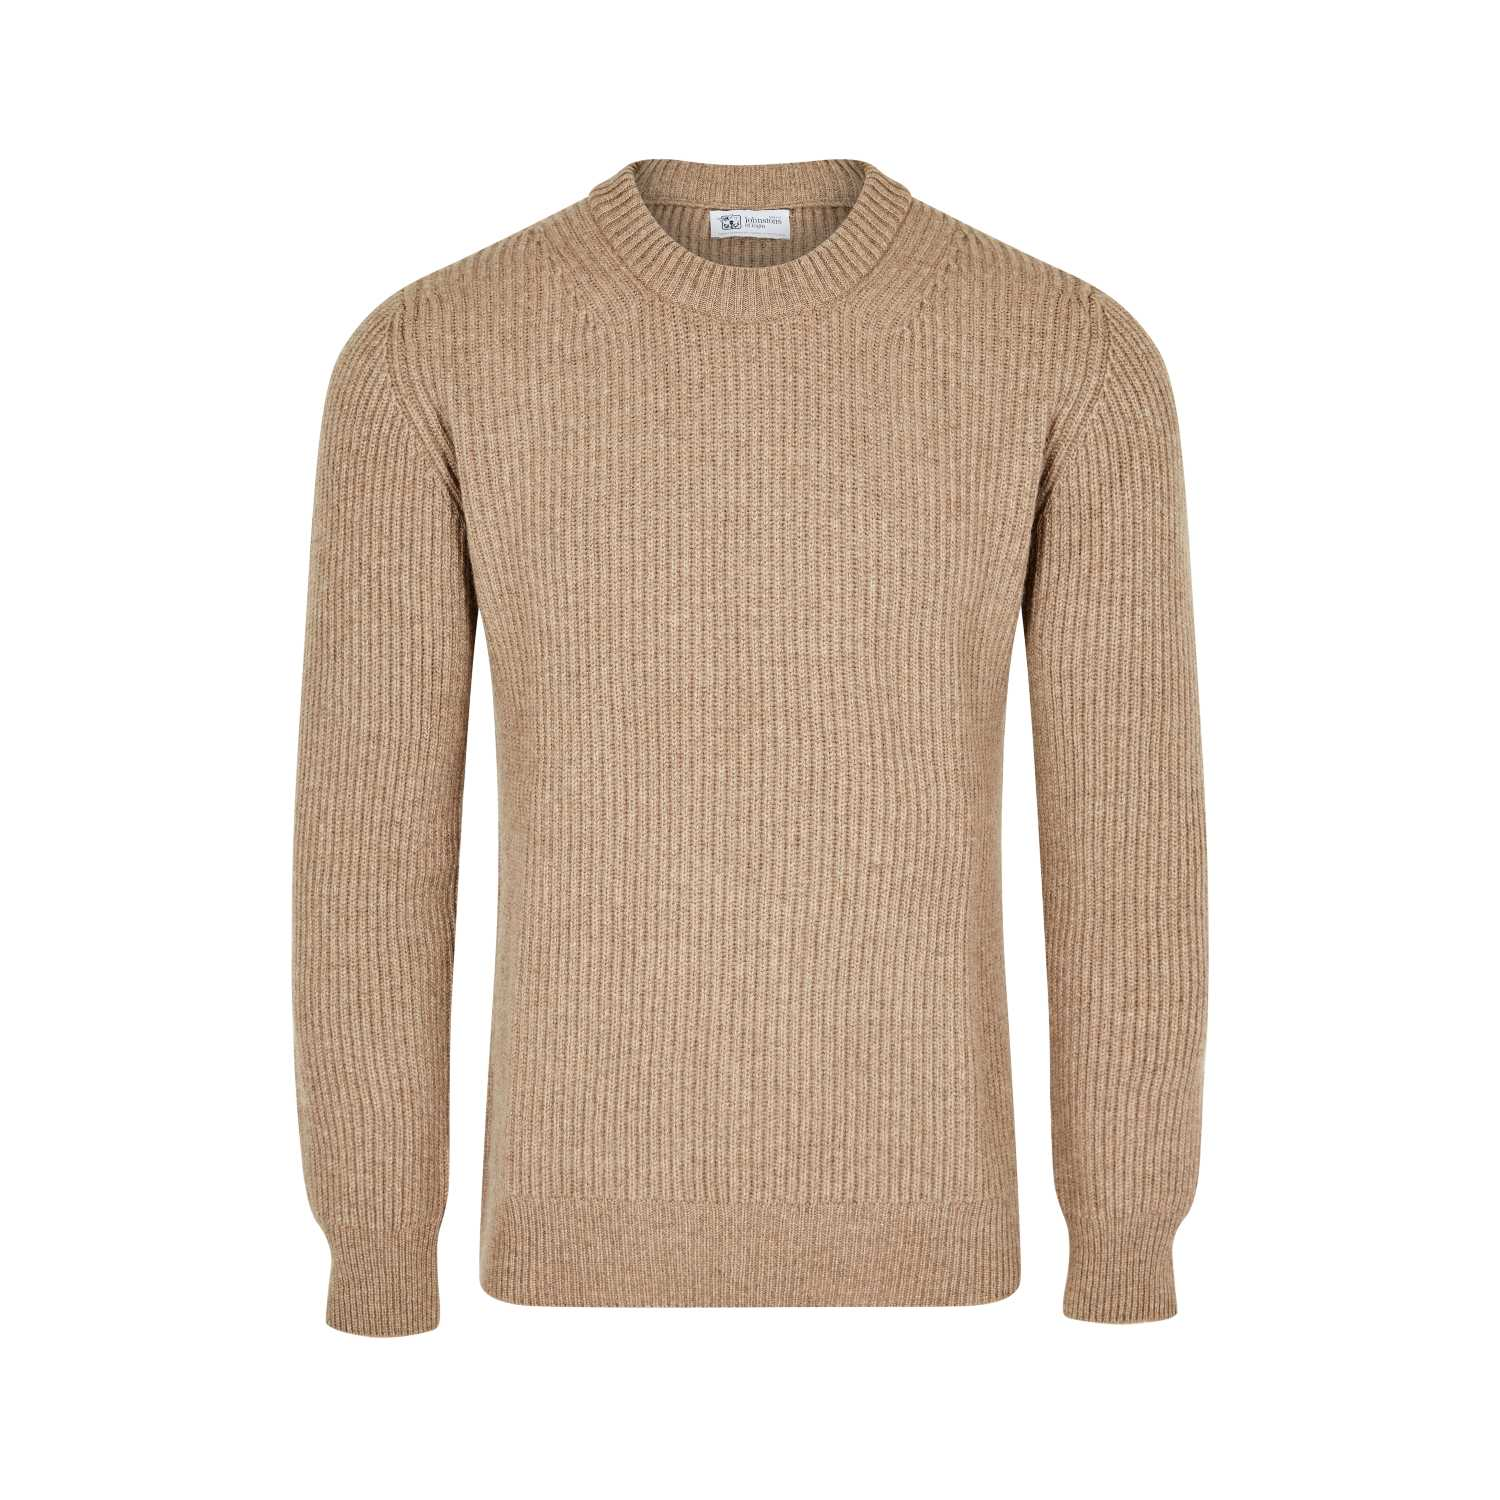 Johnsons Cashmere | Mens 12-Ply Cashmere Ribbed Round Neck Sweater | Navy Blue | Shop now at The Cashmere Choice | London